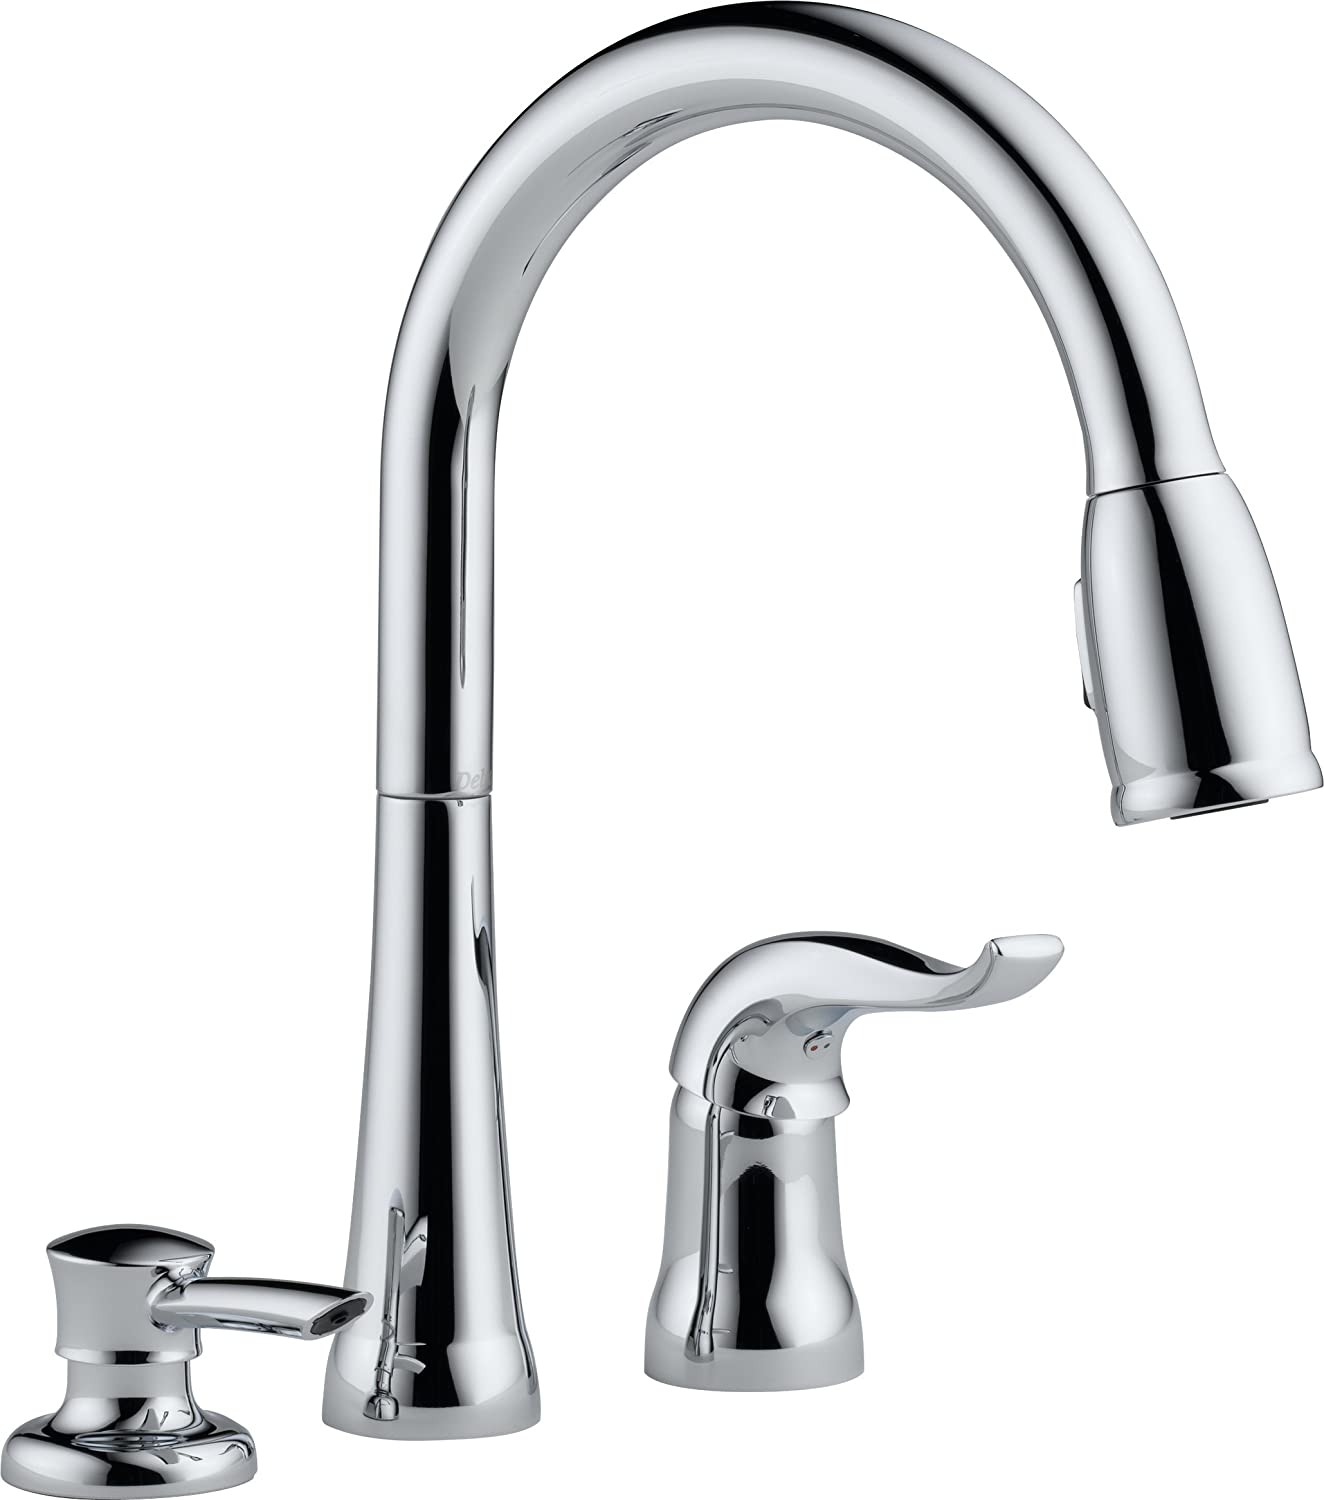 delta faucet. Delta 16970 SD DST Single Handle Pull Down Kitchen Faucet with Soap  Dispenser Chrome Touch On Sink Faucets Amazon com